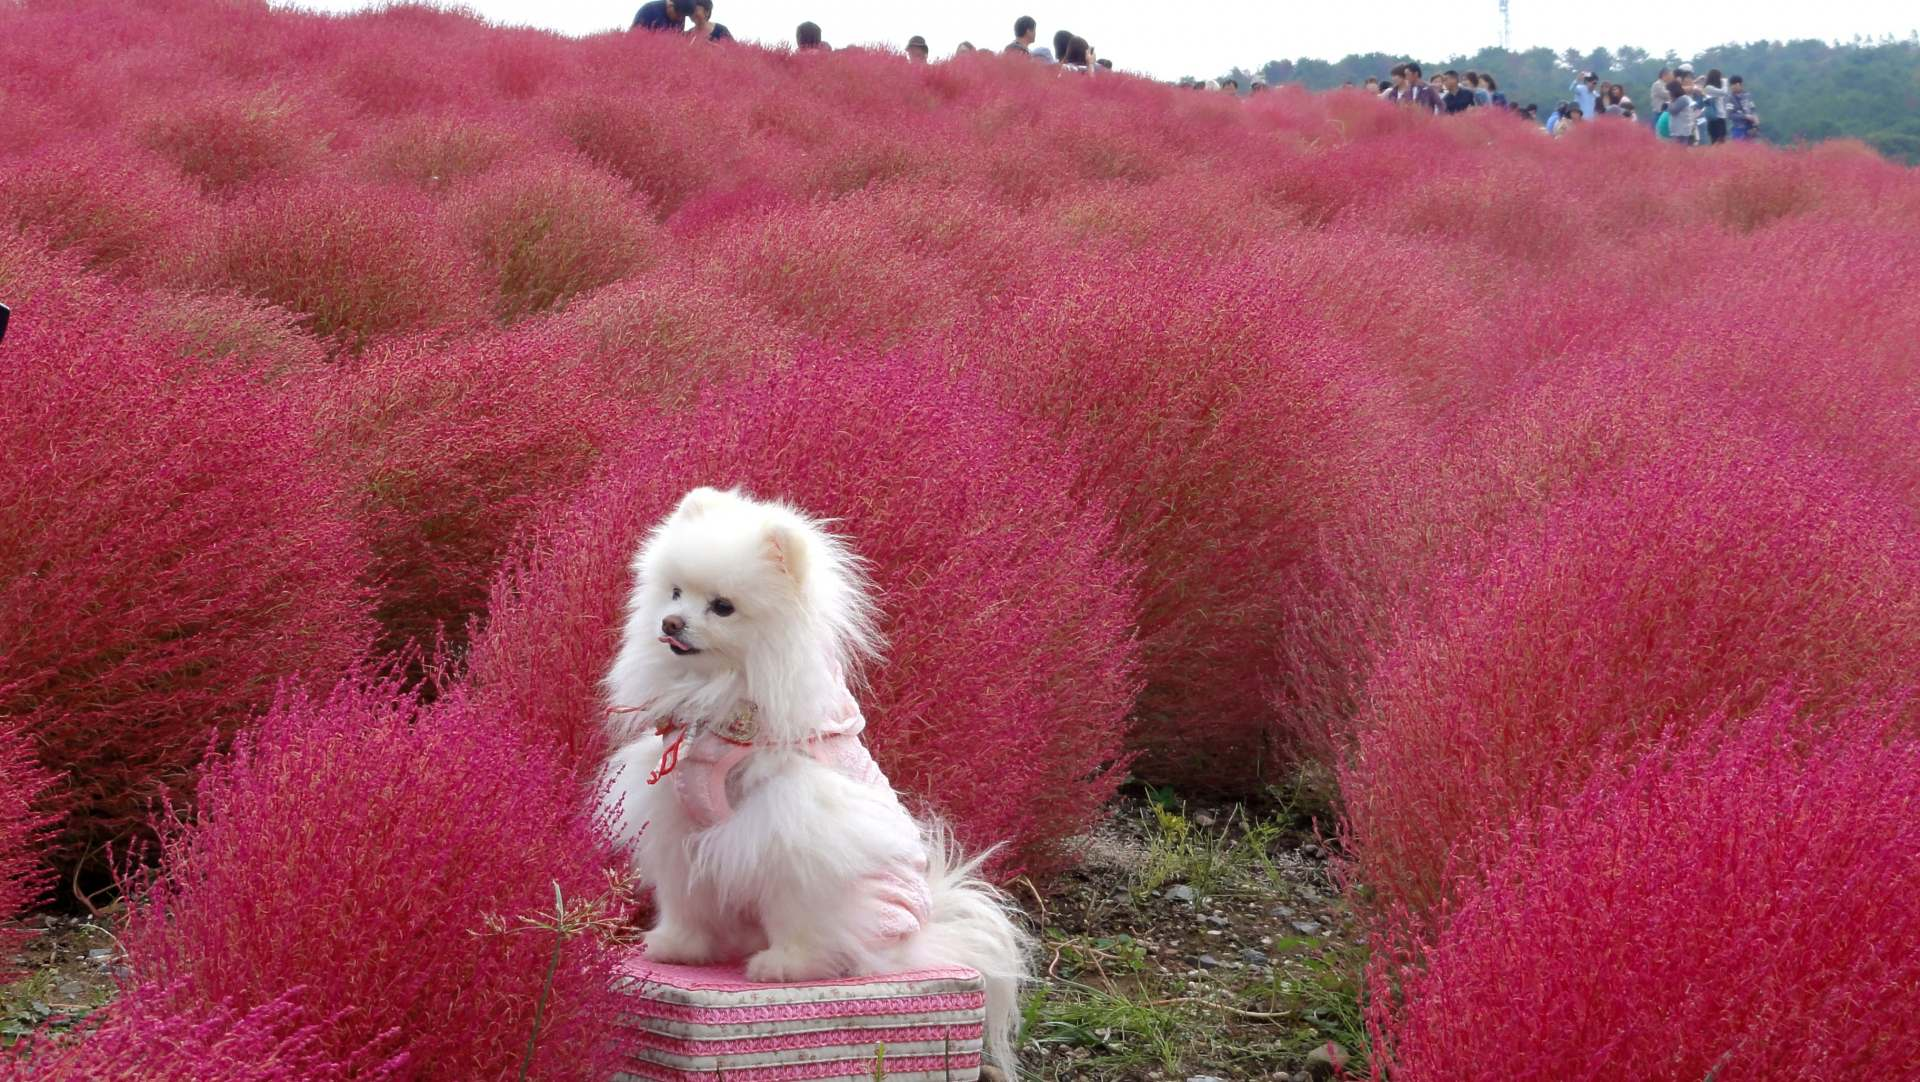 Summer cypress field and dog